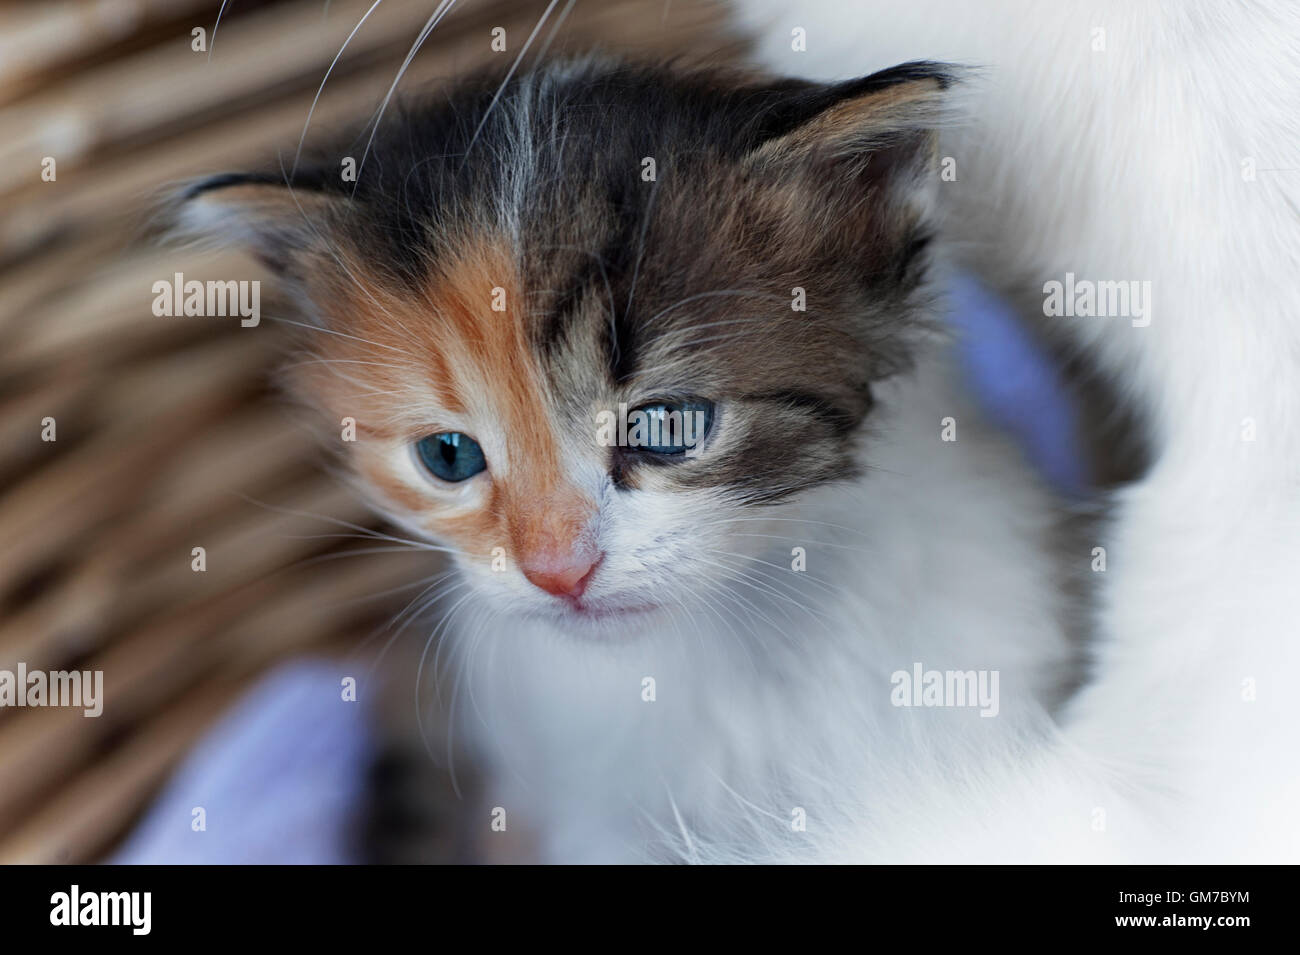 Four weeks old kitten next to its mother in a basket - Stock Image